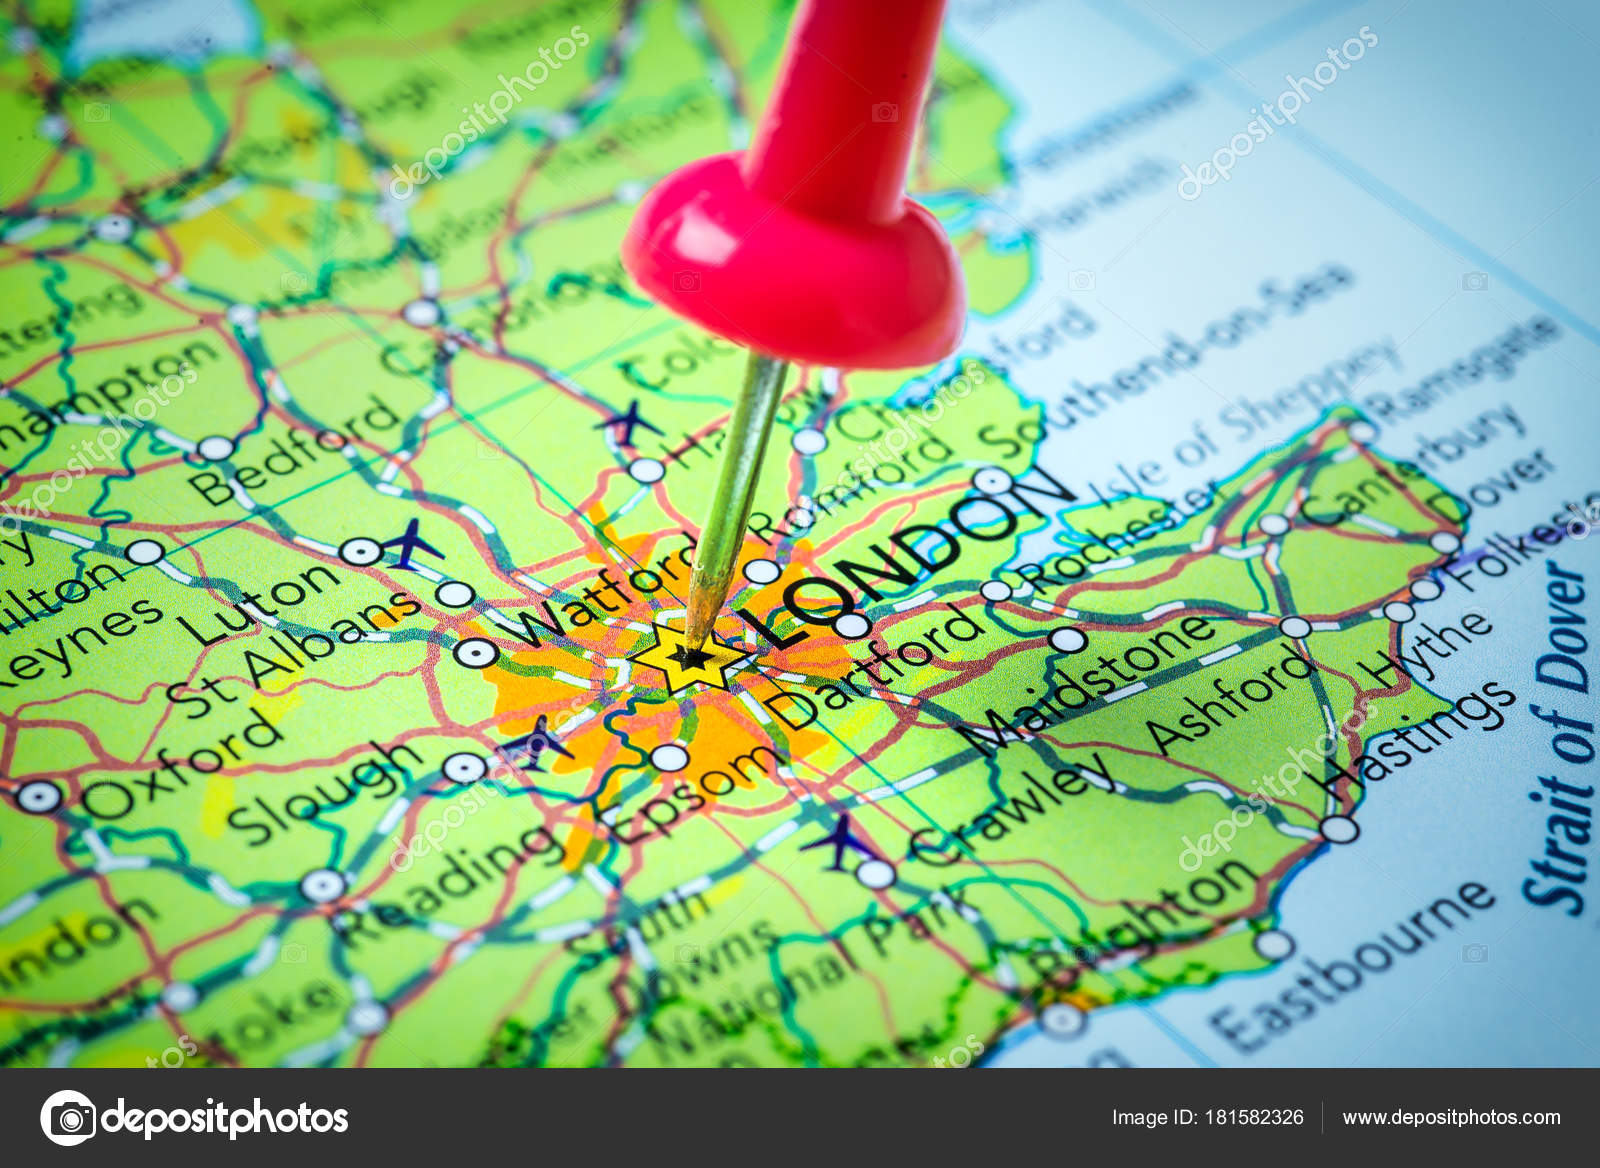 London In United Kingdom Pinned On A Map Of Europe Stock Photo